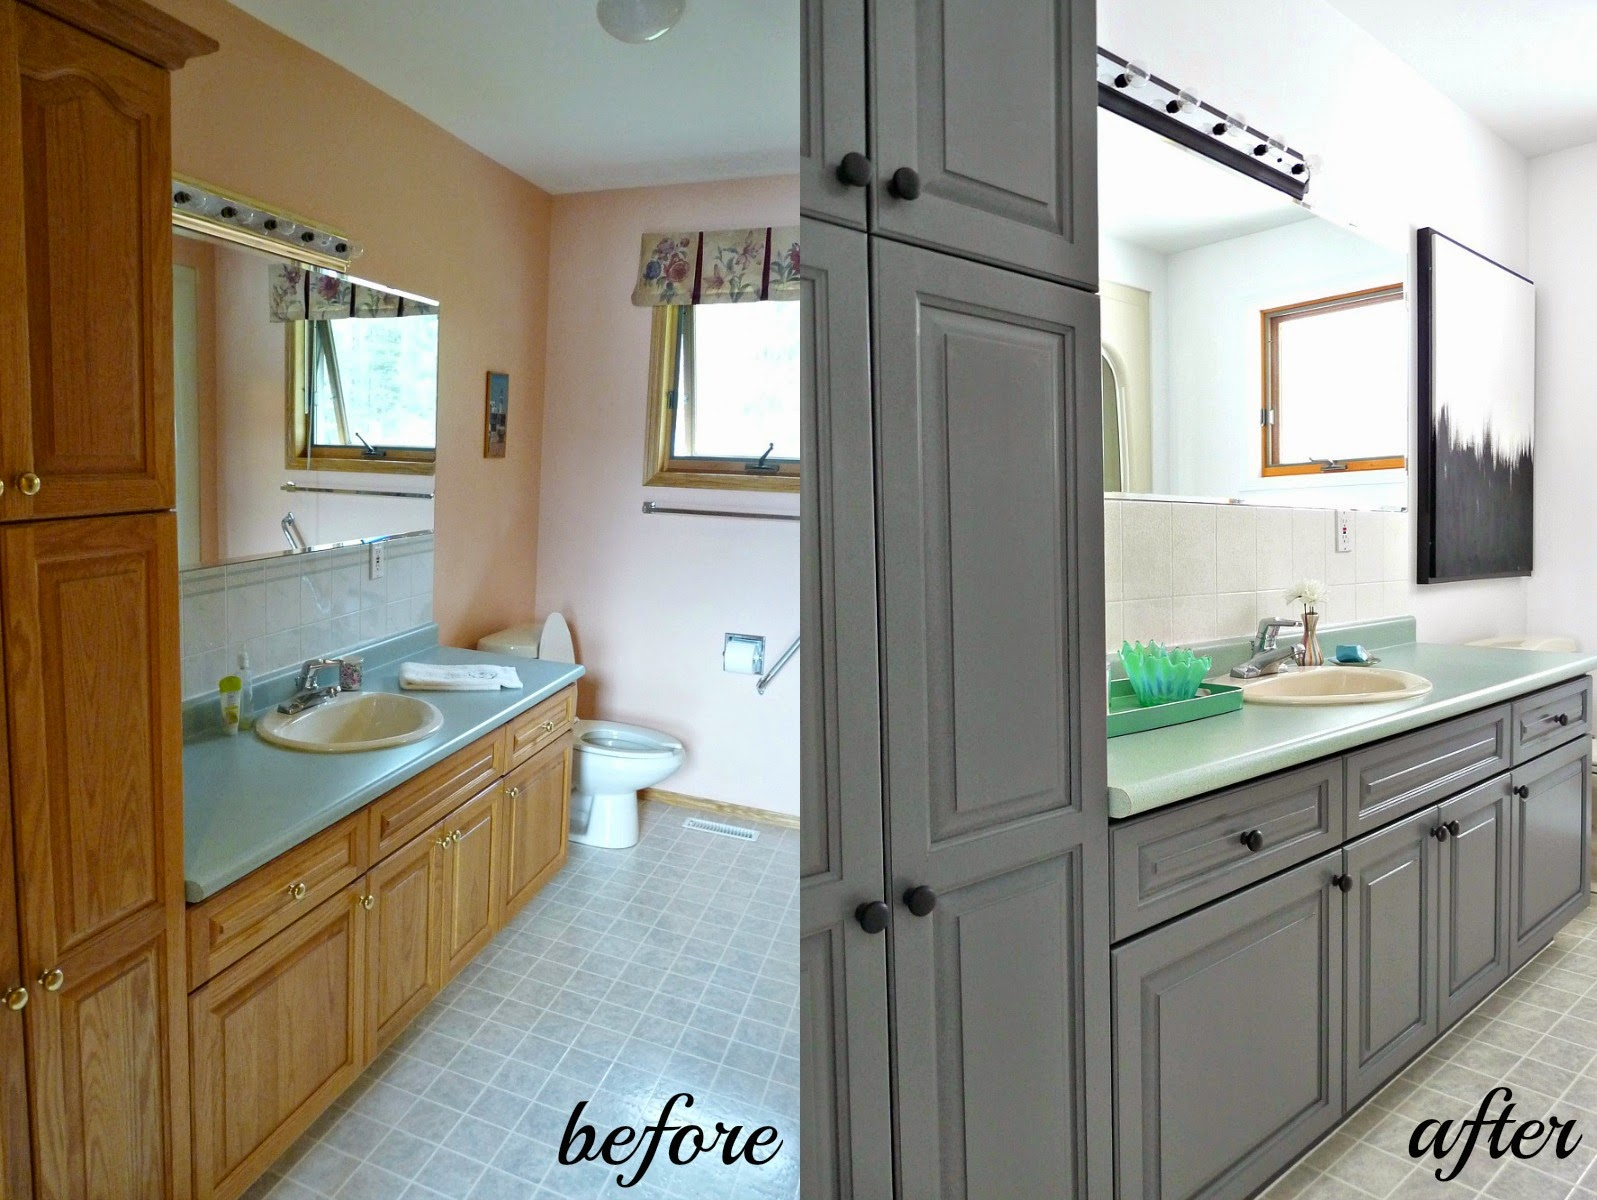 Cabinet refinishing 101 latex paint vs stain vs rust for Can you use kitchen cabinets in bathrooms